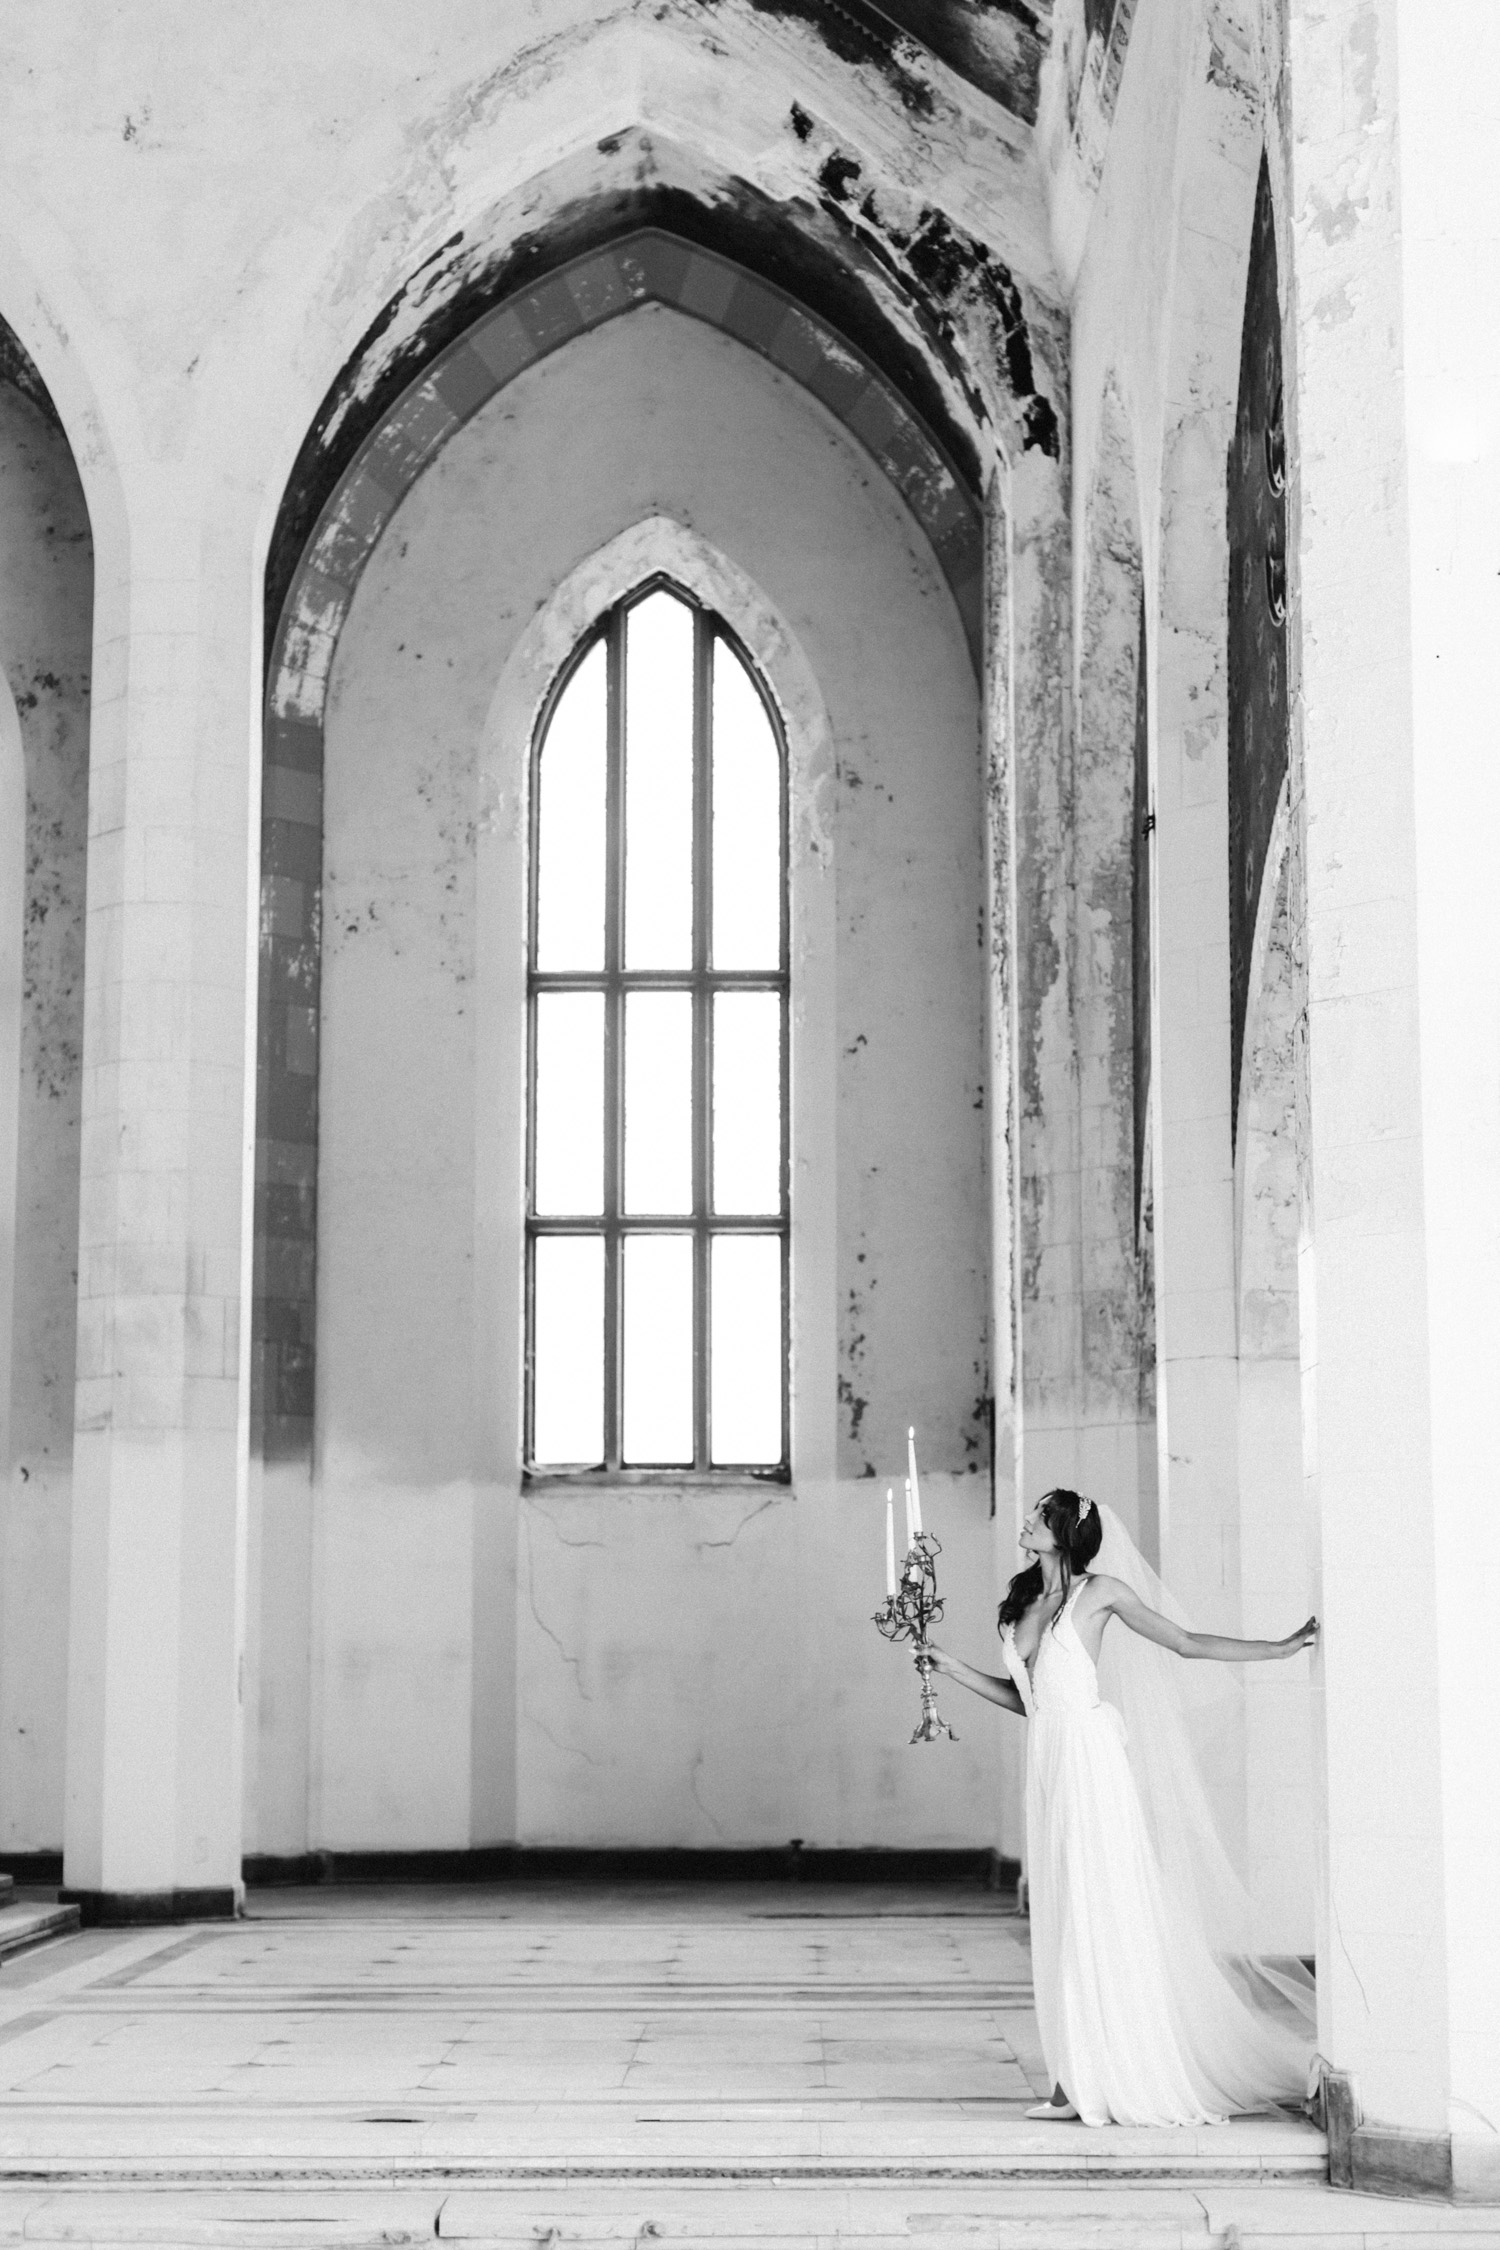 A bride explores an abandoned cathedral with a candelabra at her destination wedding